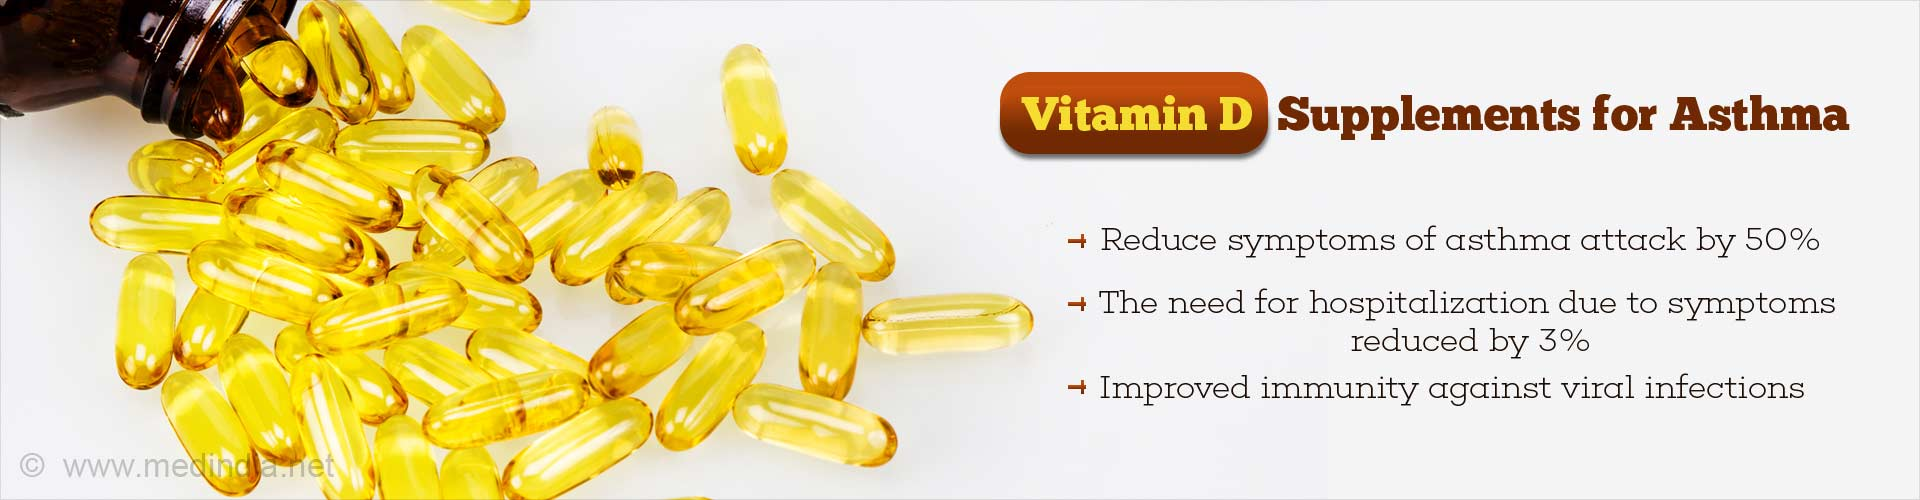 Vitamin D Pills Reduce Number of Asthma Attacks